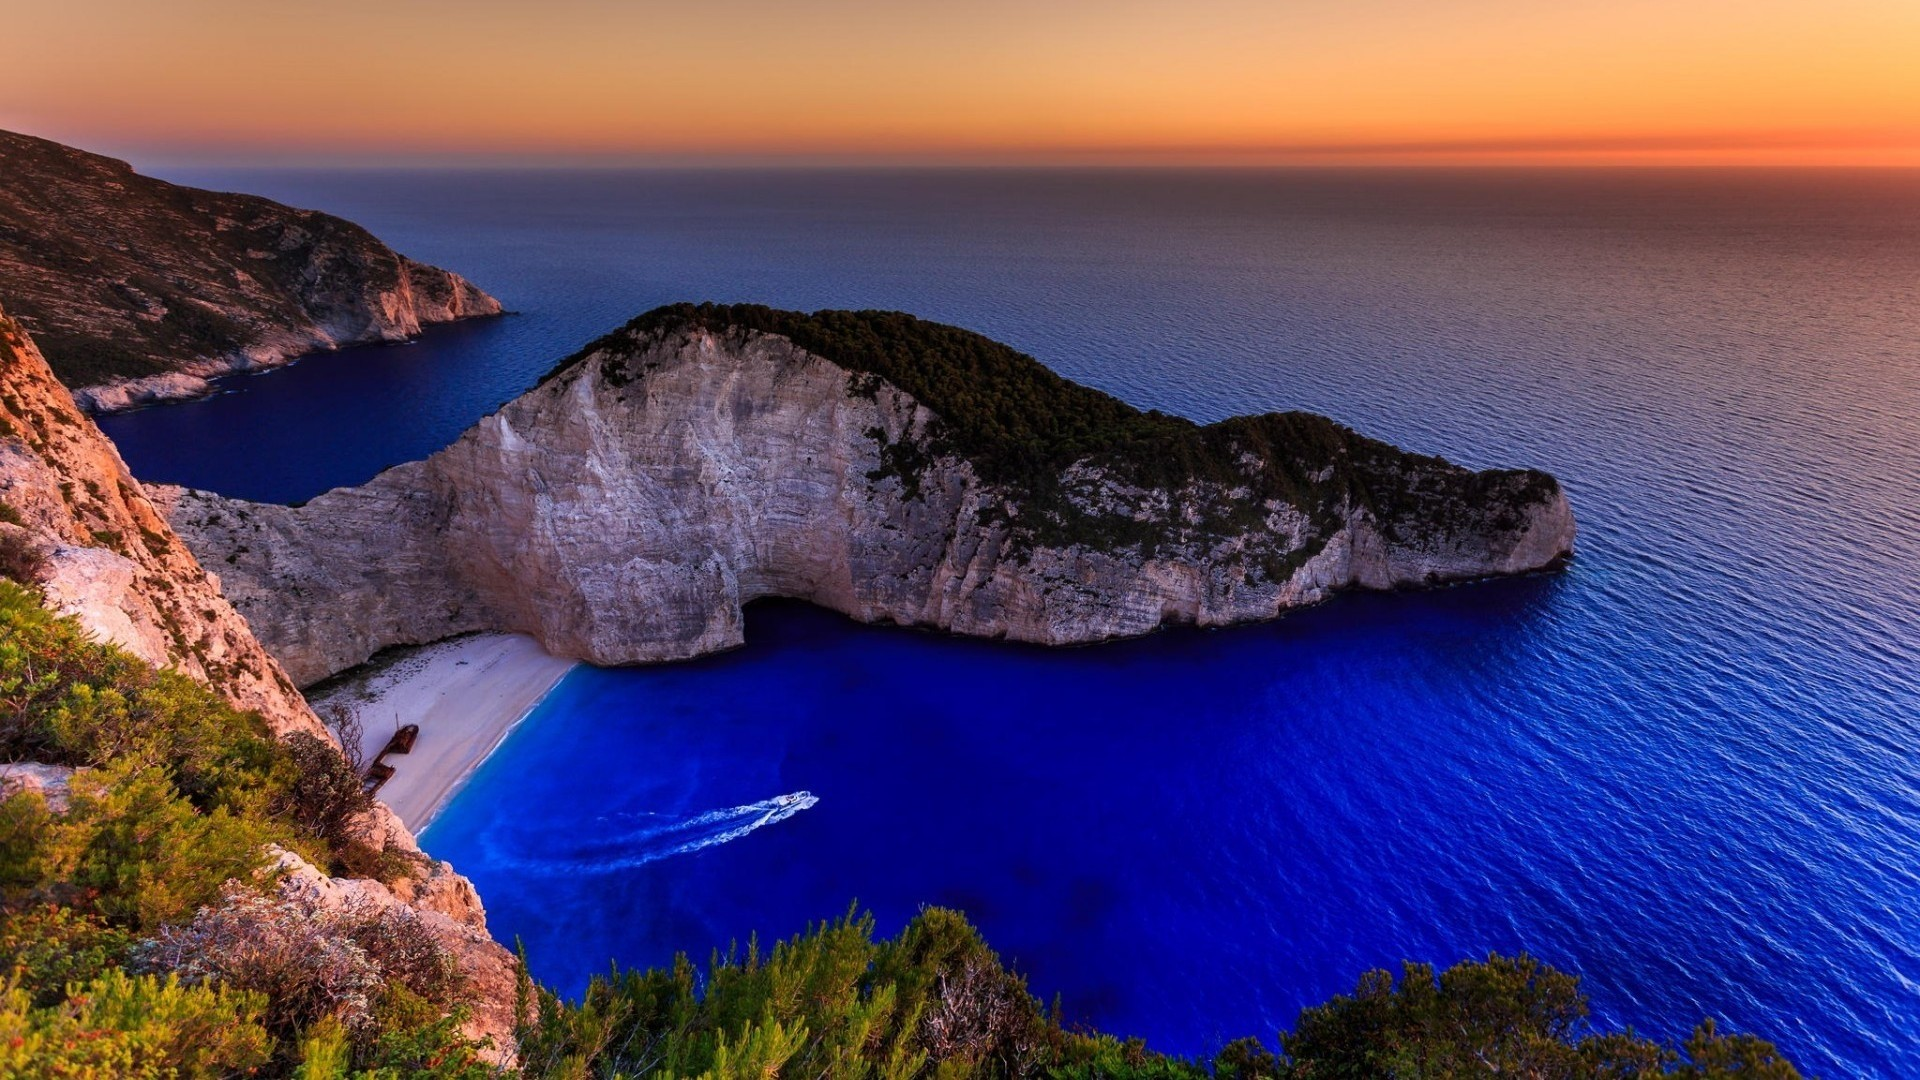 … Navagio Beach Zakynthos4K Wide Ultra Hd Wallpaper | HD Wallpapers